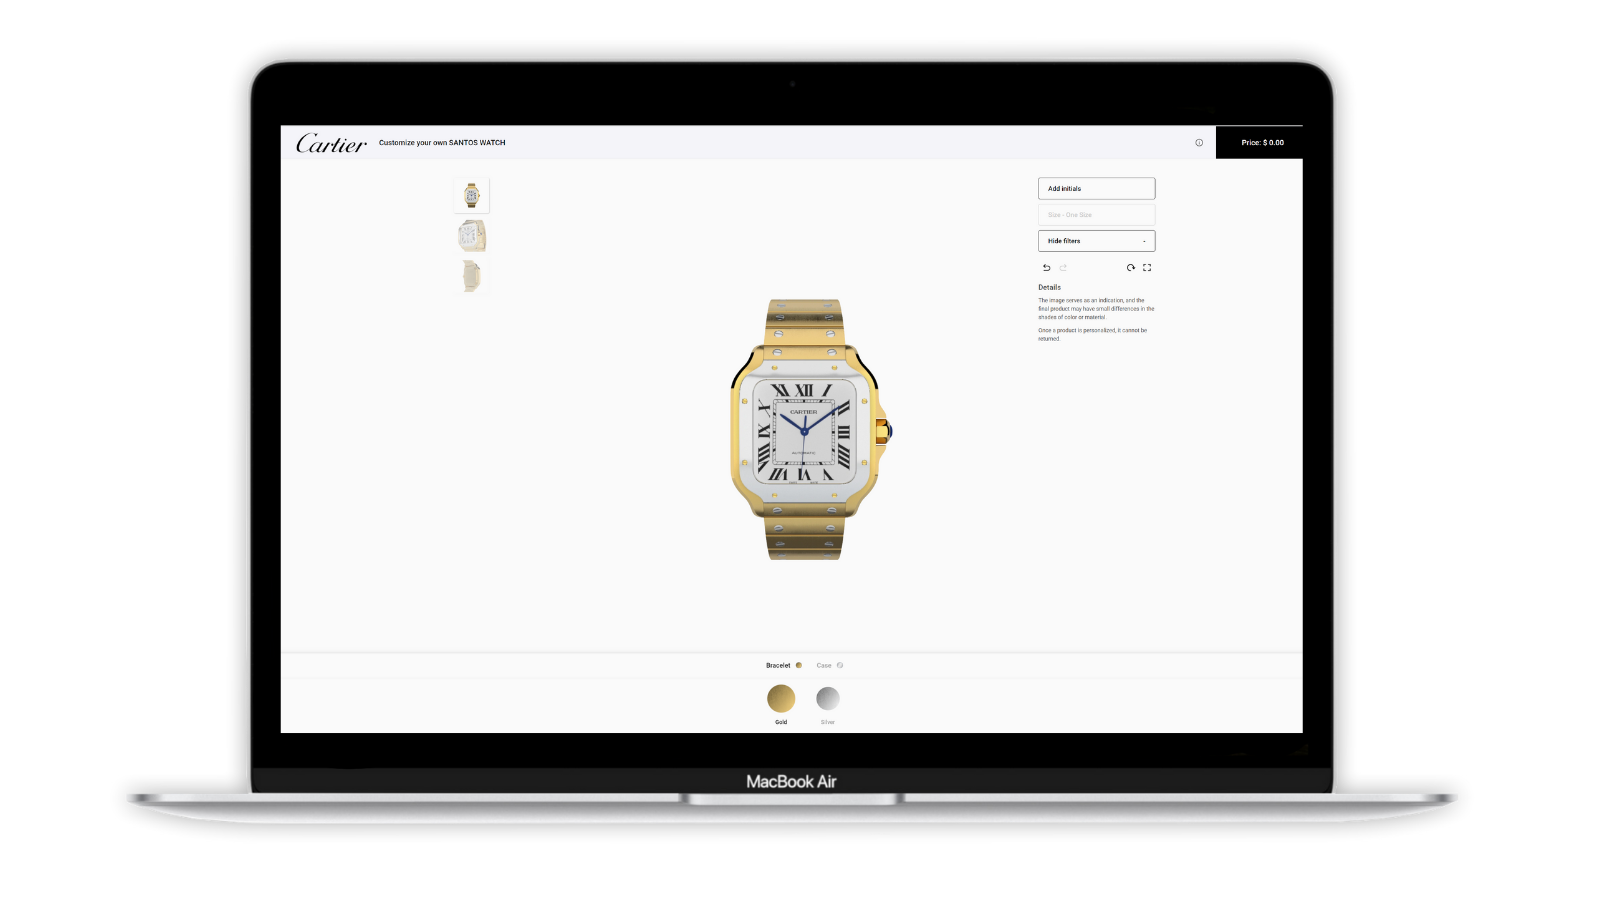 A simulation of Cartier watch on PlatformE Ripe White.